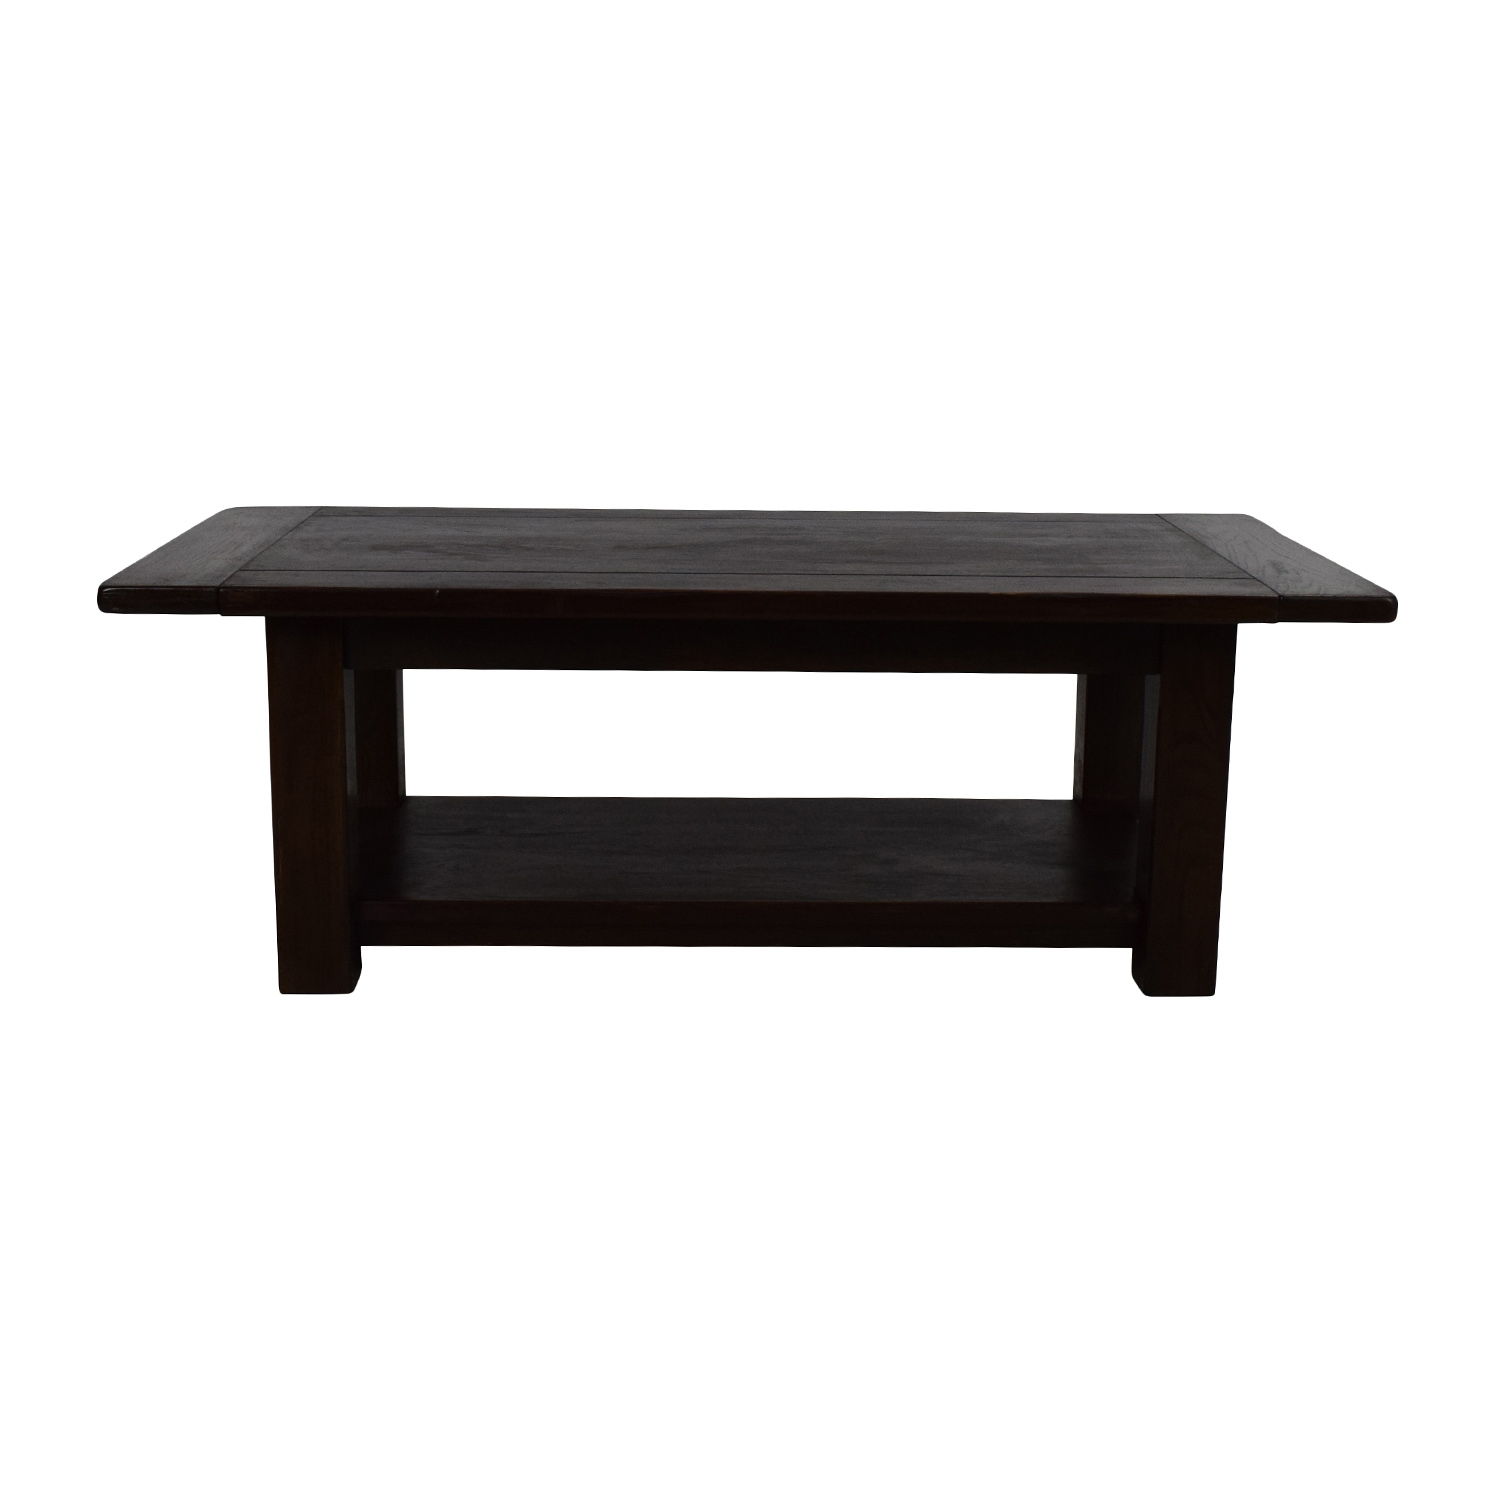 61% OFF Workbench Workbench Mid Century Wood Coffee Table w